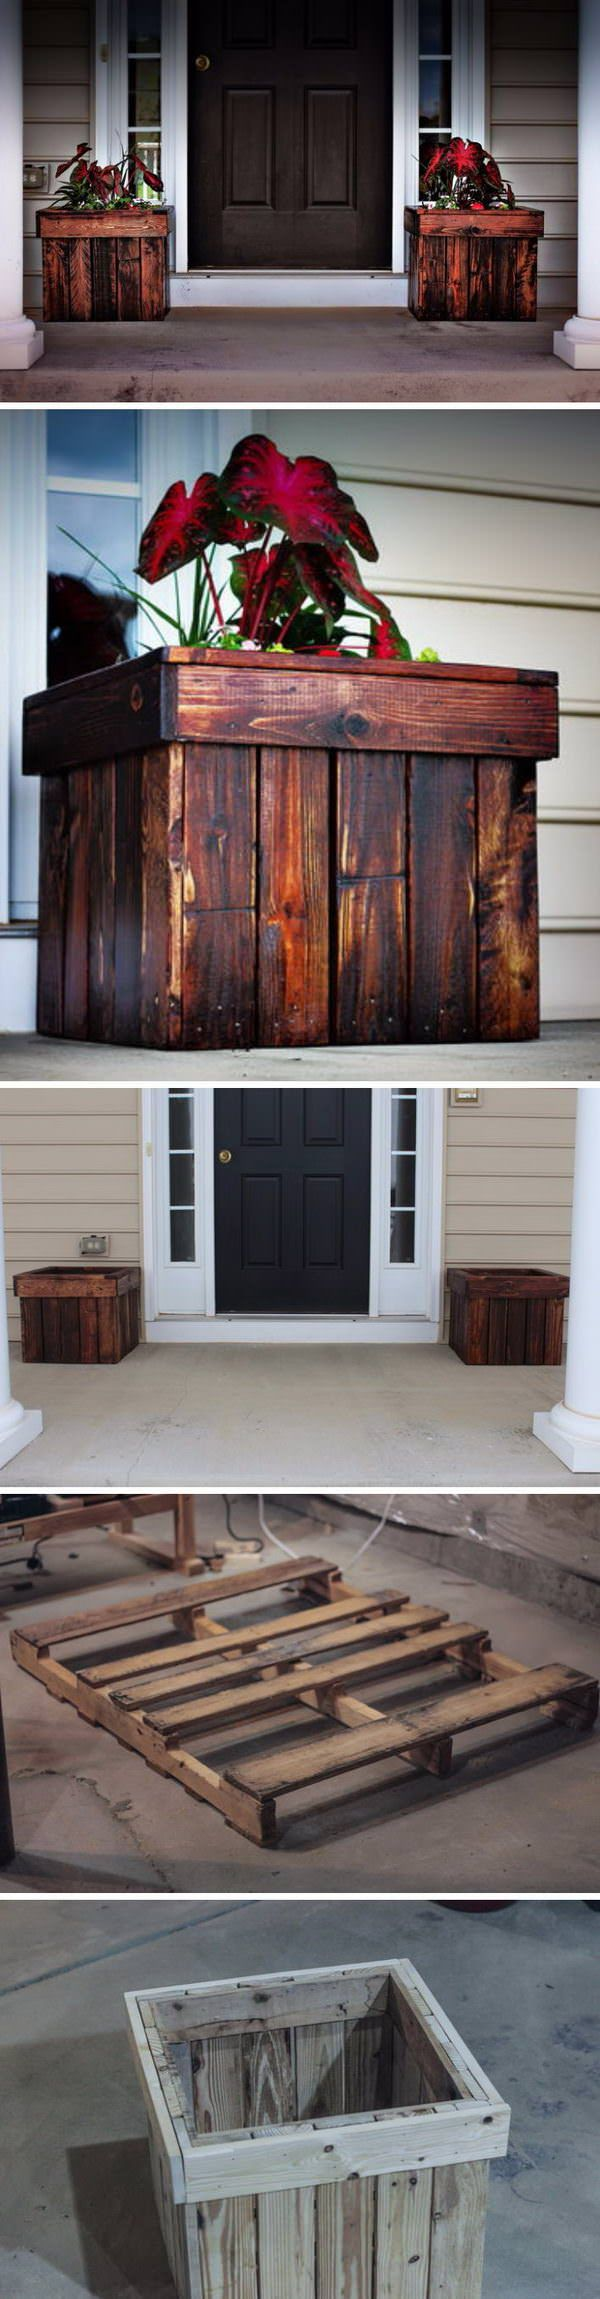 Plants not only make any space more inviting and refreshing, but they are believed to support healthy well-being, too. But if you're tired of clay or ceramic pots, then repurposed wooden pallets are the next big thing.